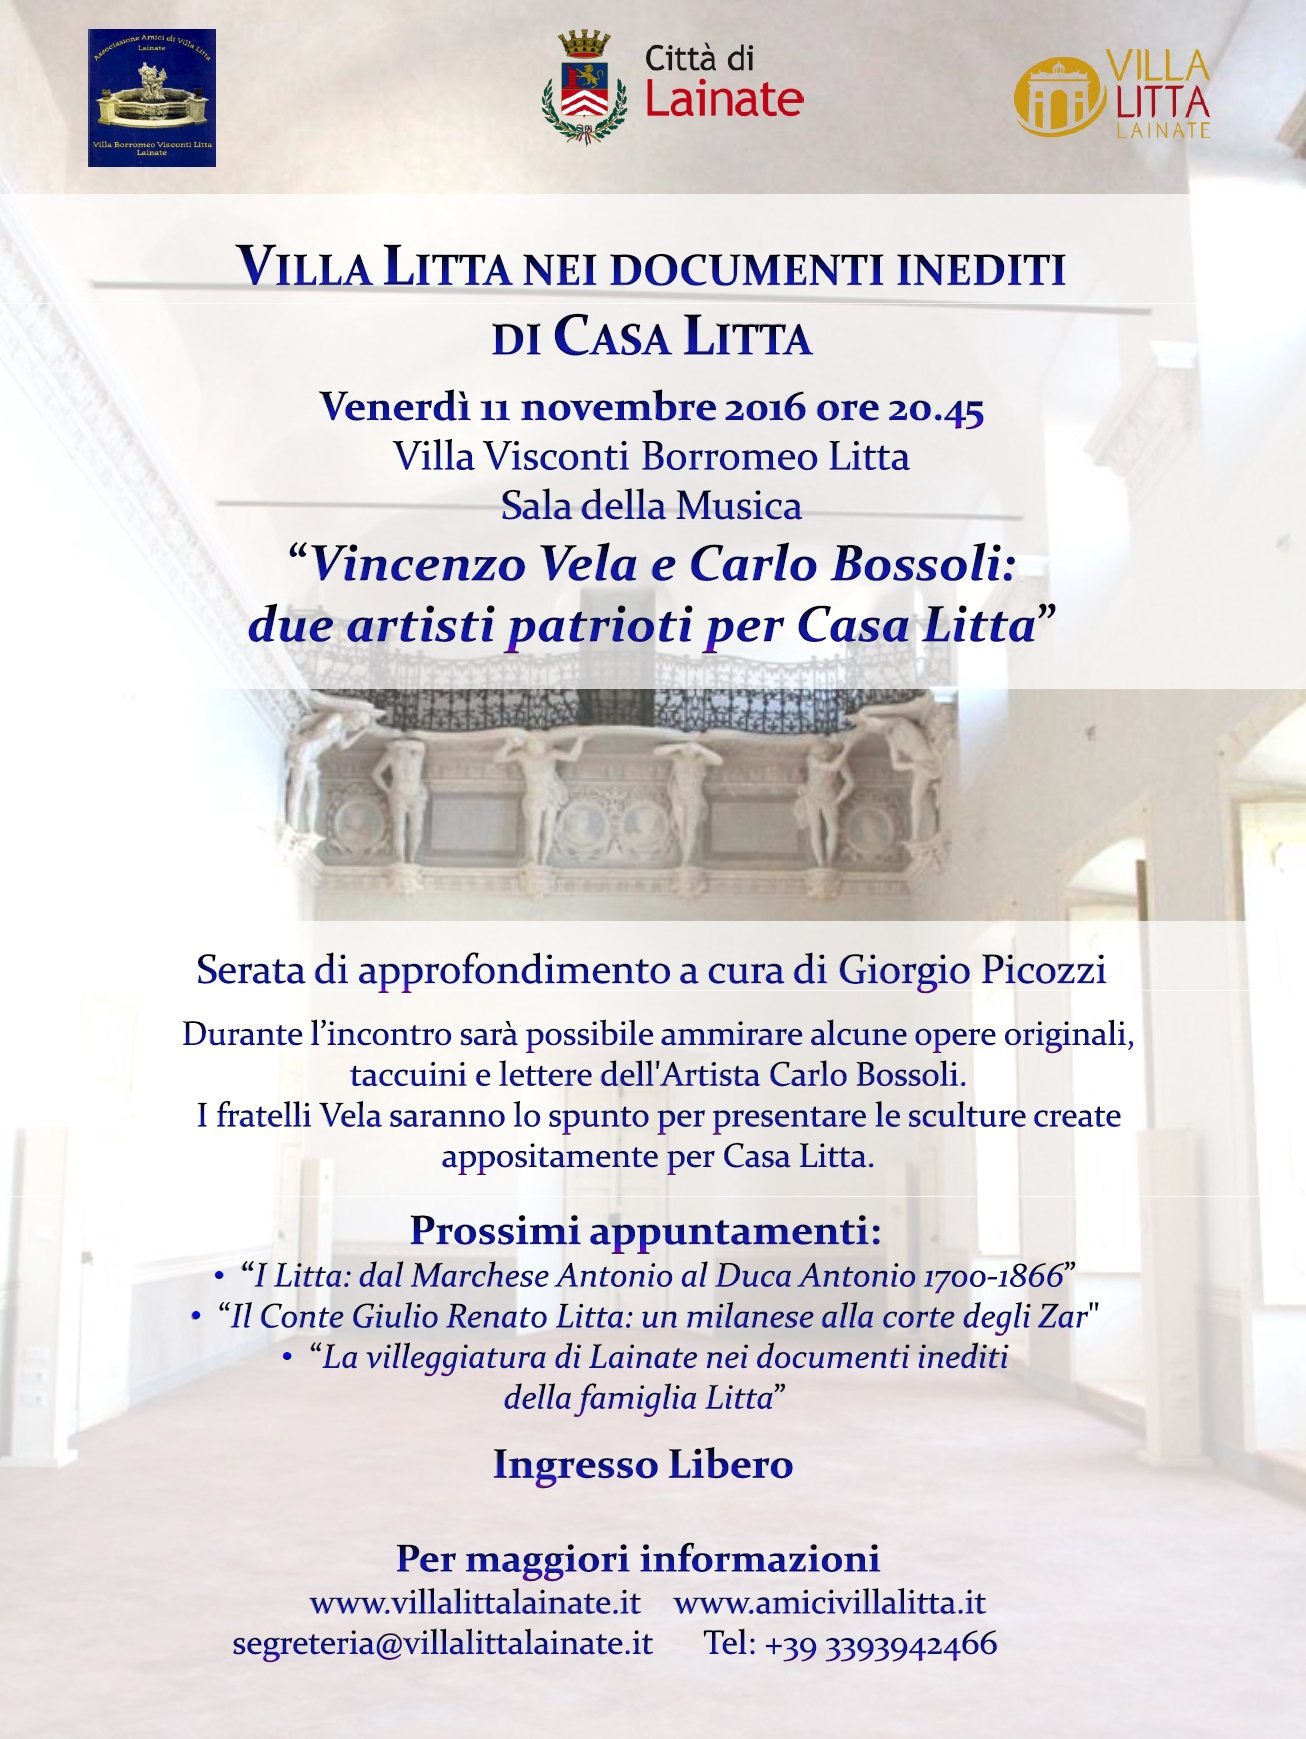 'Villa Litta nei documenti inediti di Casa Litta'